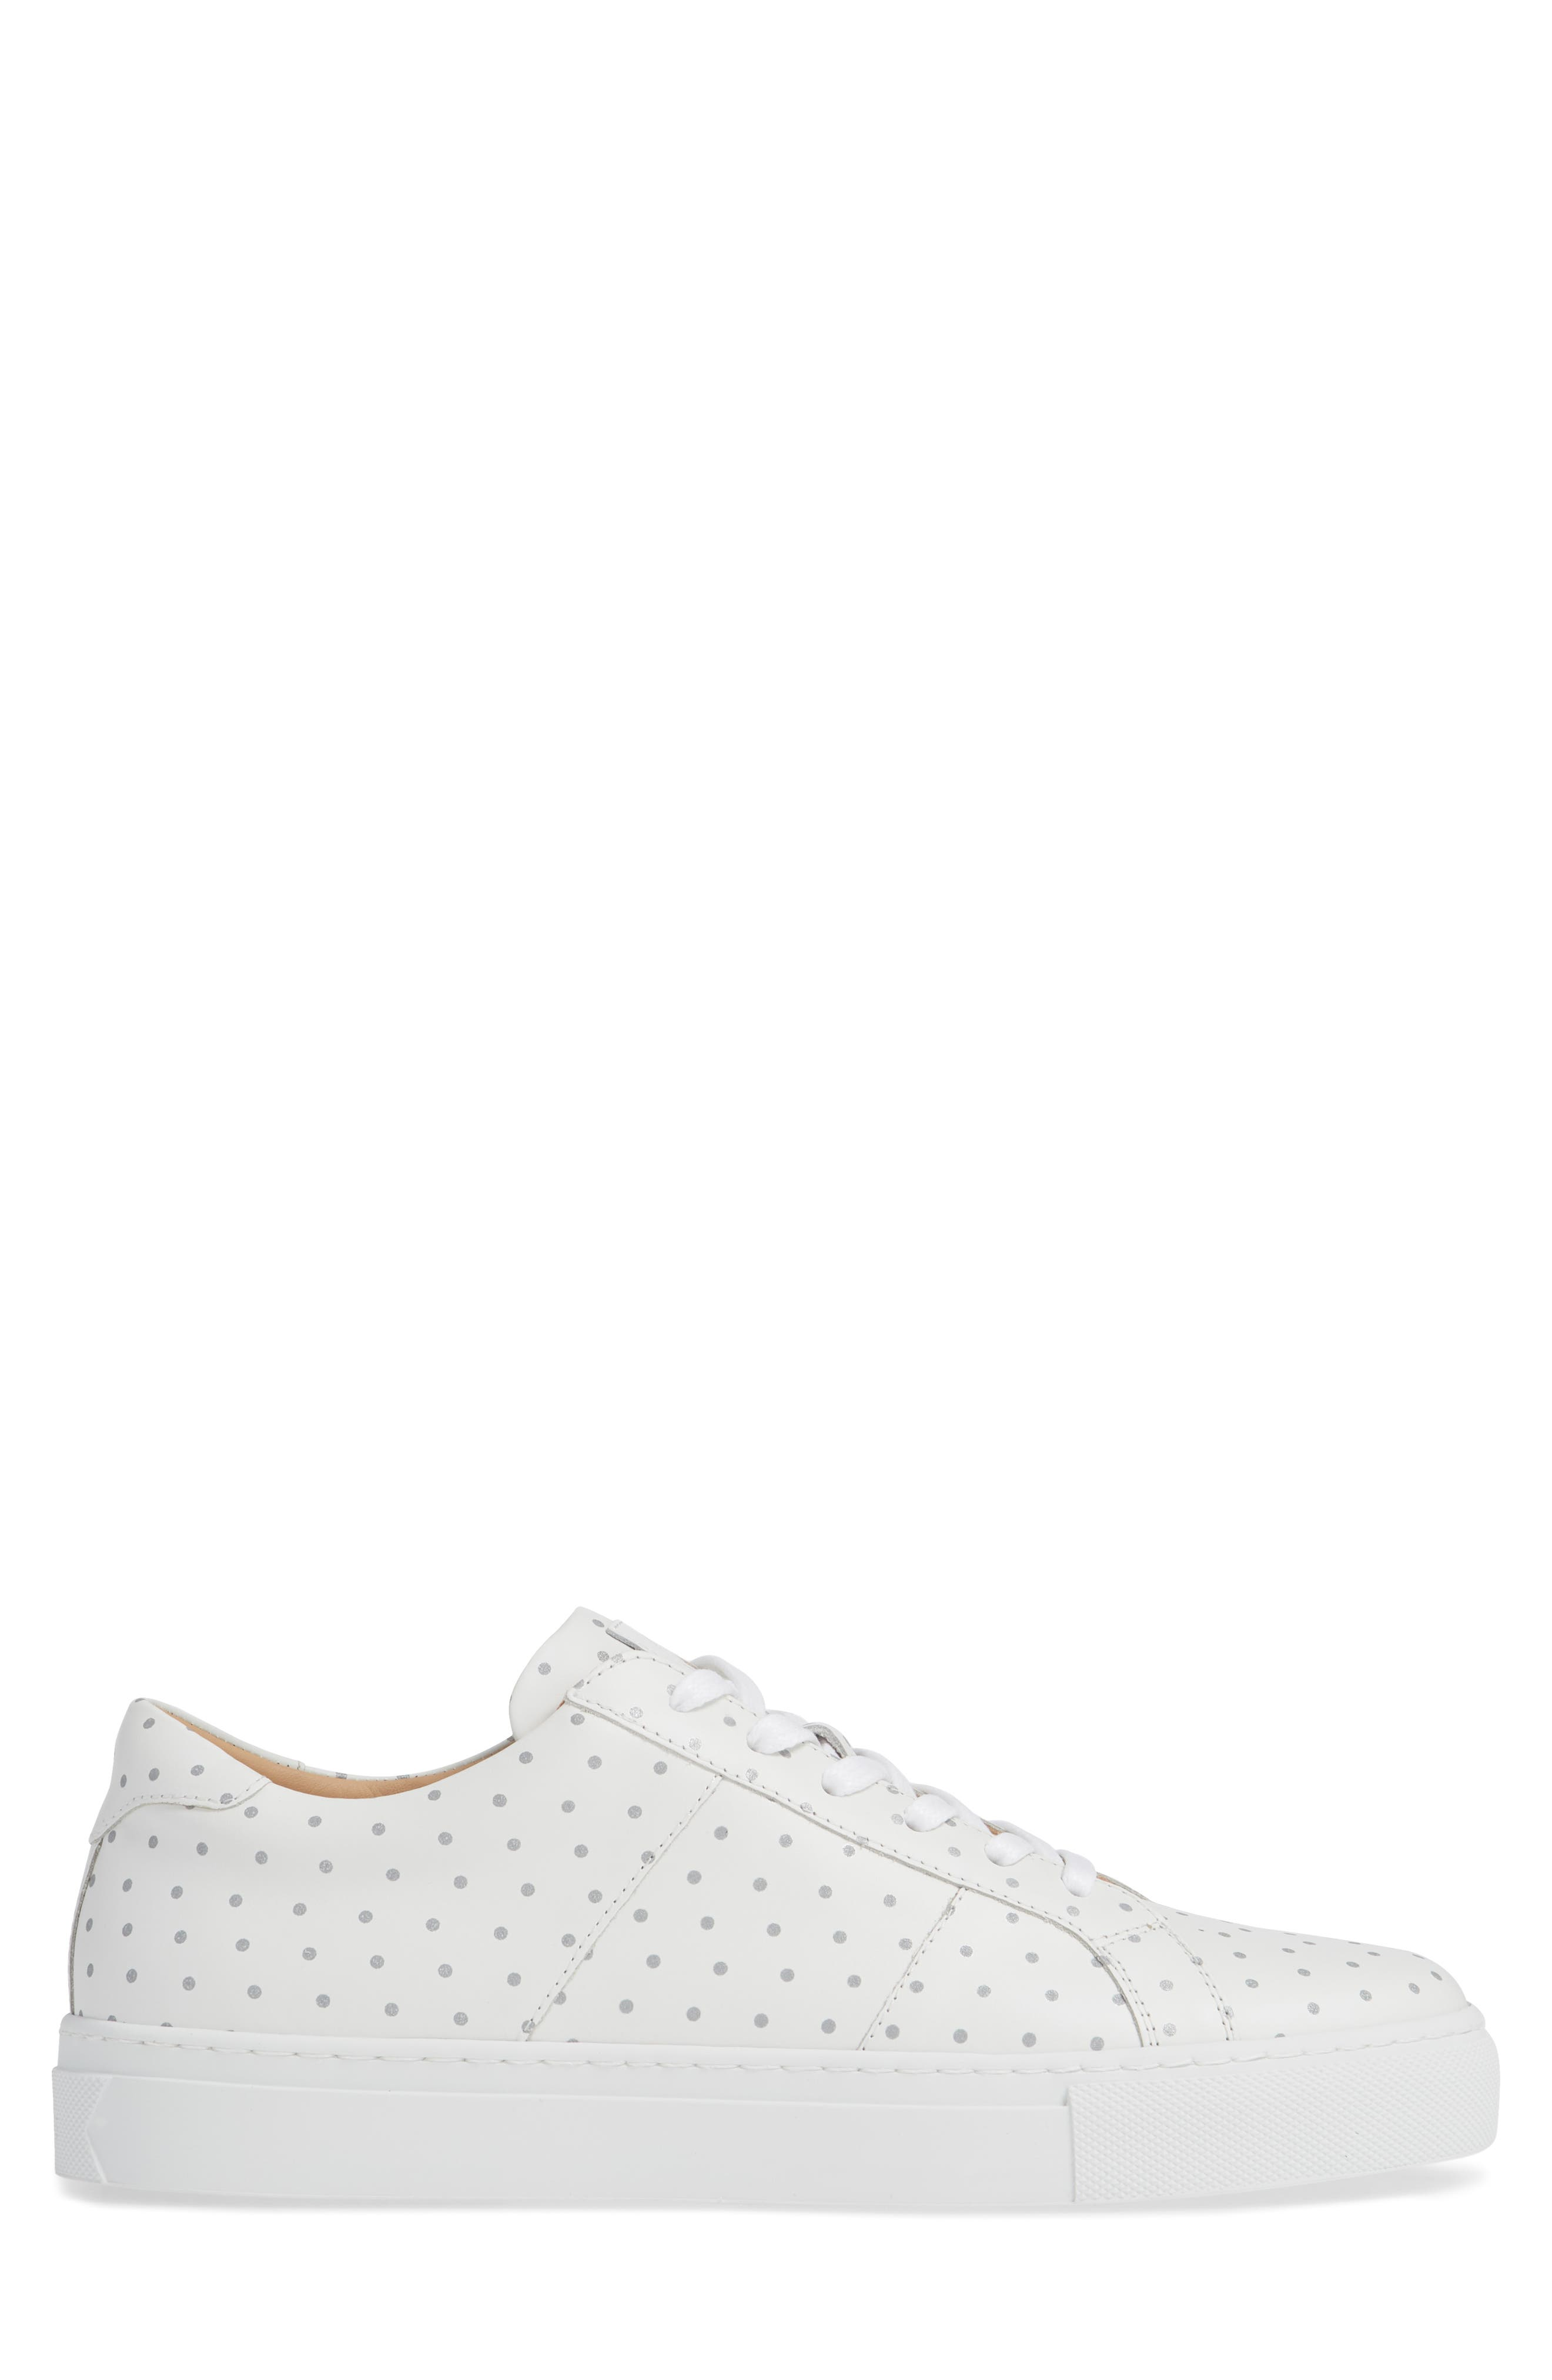 Nick Wooster x GREATS Royale Dots Low Top Sneaker,                             Alternate thumbnail 3, color,                             WHITE W/ 3M DOTS